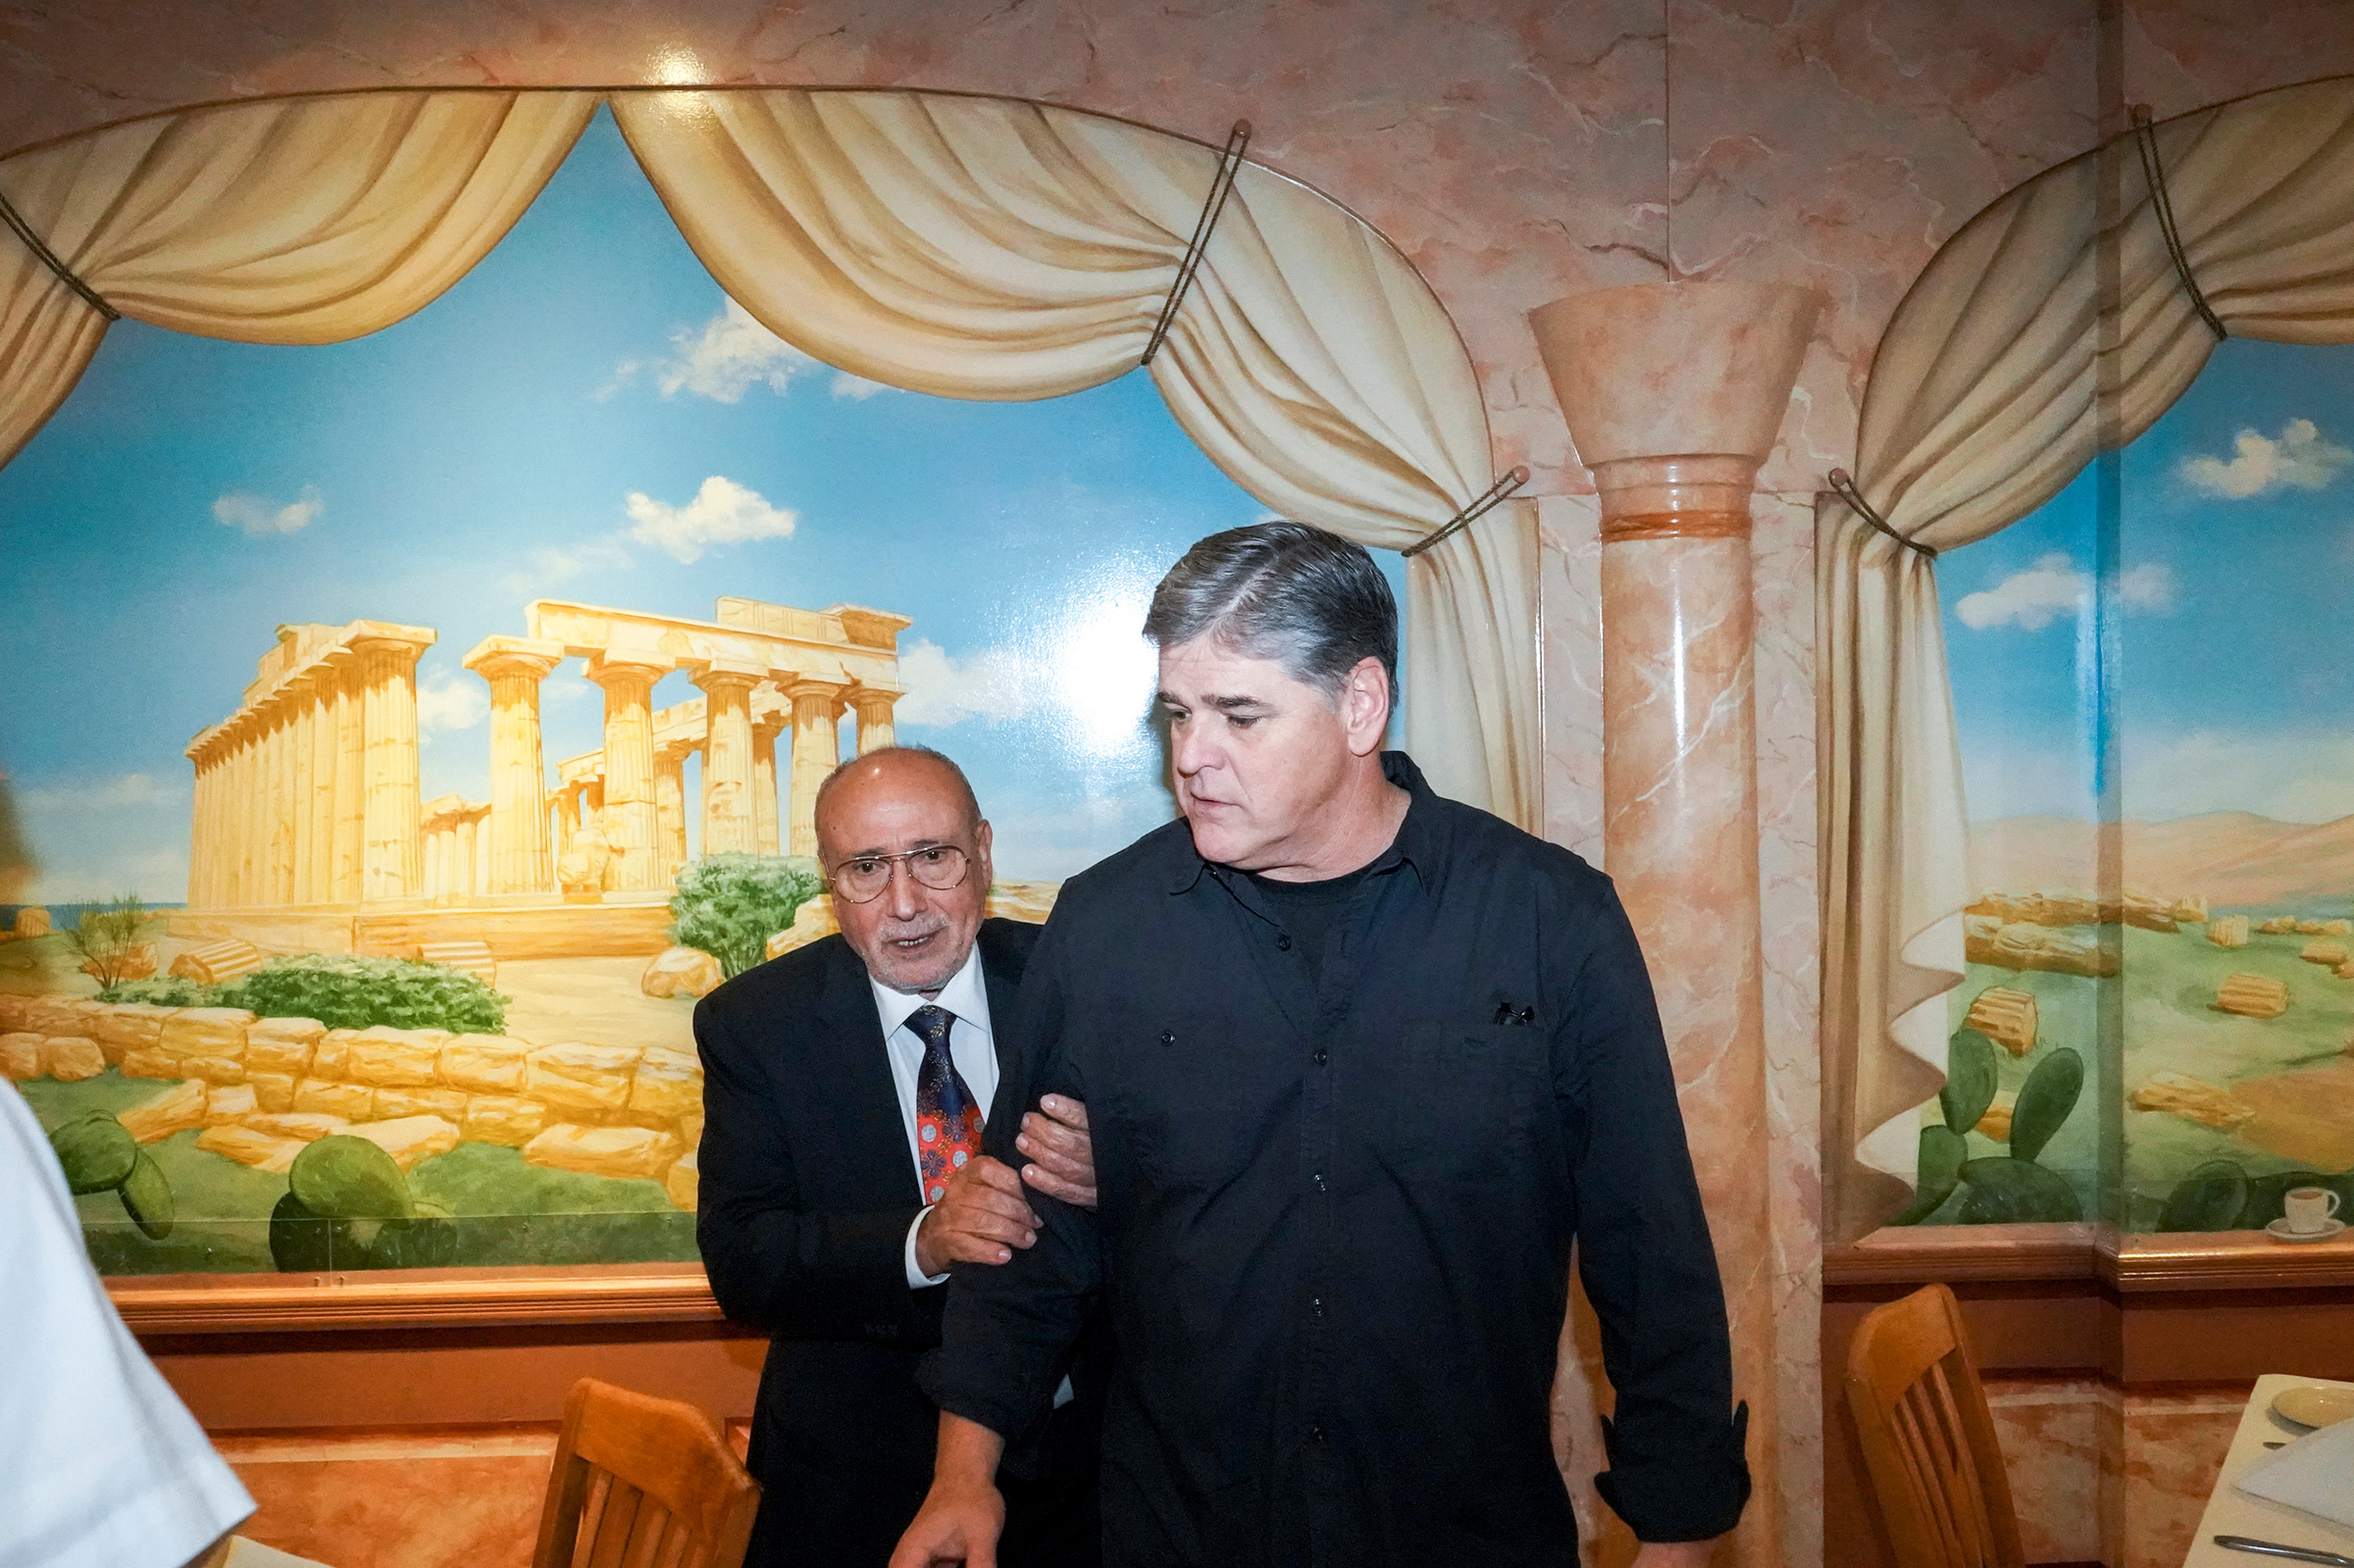 Sean Hannity, conservative commentator, with the owner of Carmela's, an Italian restaurant. Hannity is one of the most popular and controversial TV hosts in the country. He has supported waterboarding and other forms of torture, equated the Qur'an with Mein Kampf, and promoted conspiracy theories about Hillary Clinton, Barack Obama and the 2020 election. New York City, 2017.